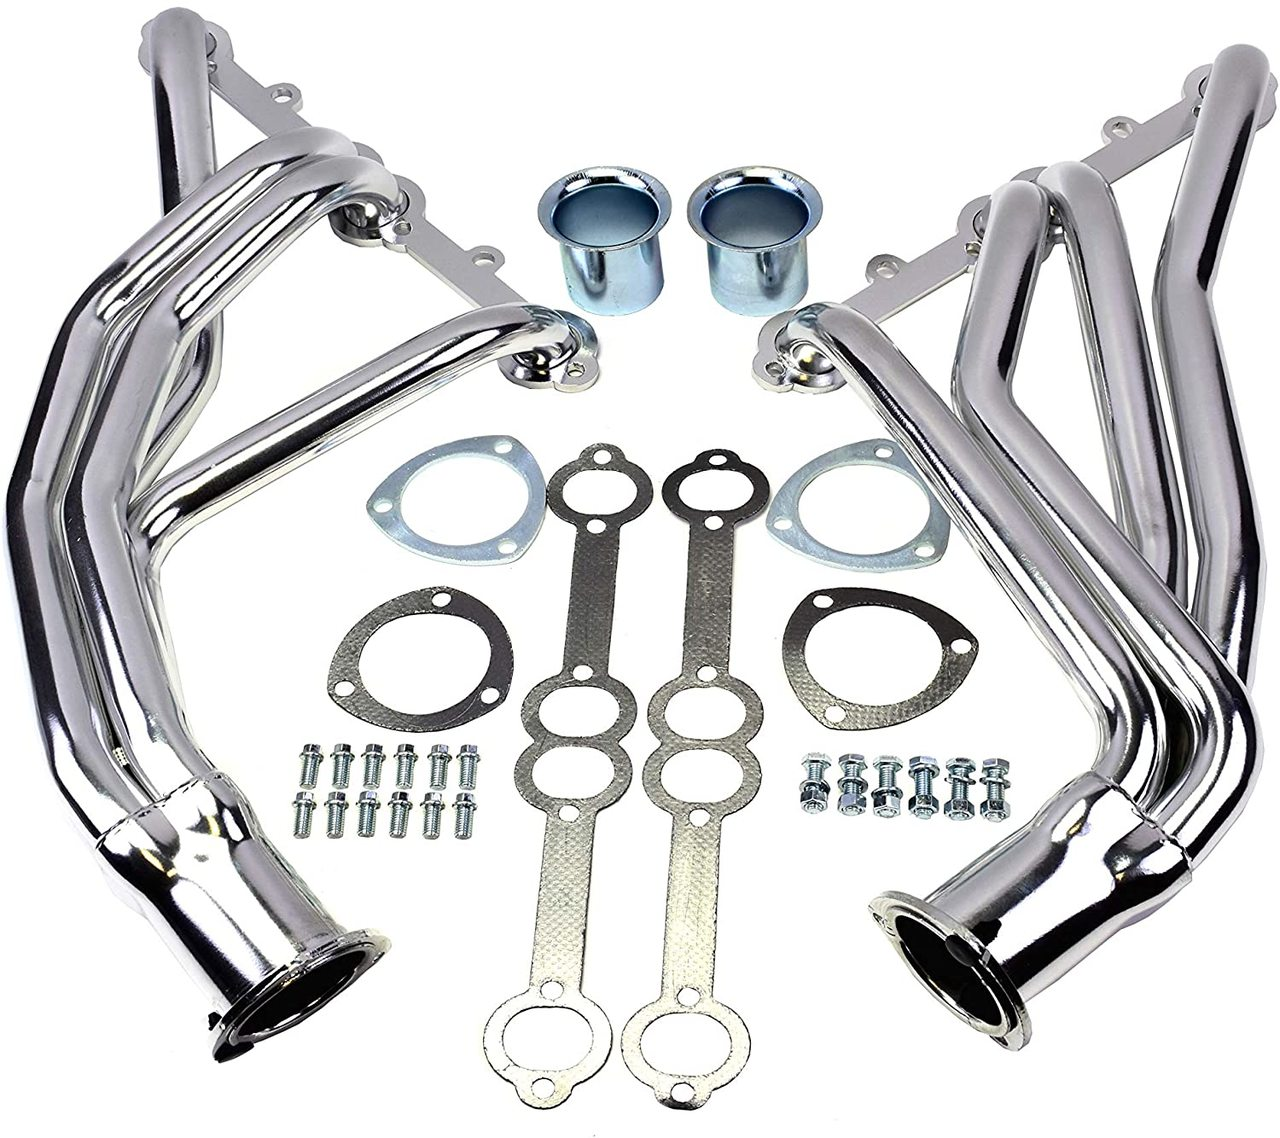 A-Team Performance SBC CHEVY/GMC TRUCK 66-87 C10 C20 K10 K20 305 327 350 383 400 CERAMIC COATED HEADERS